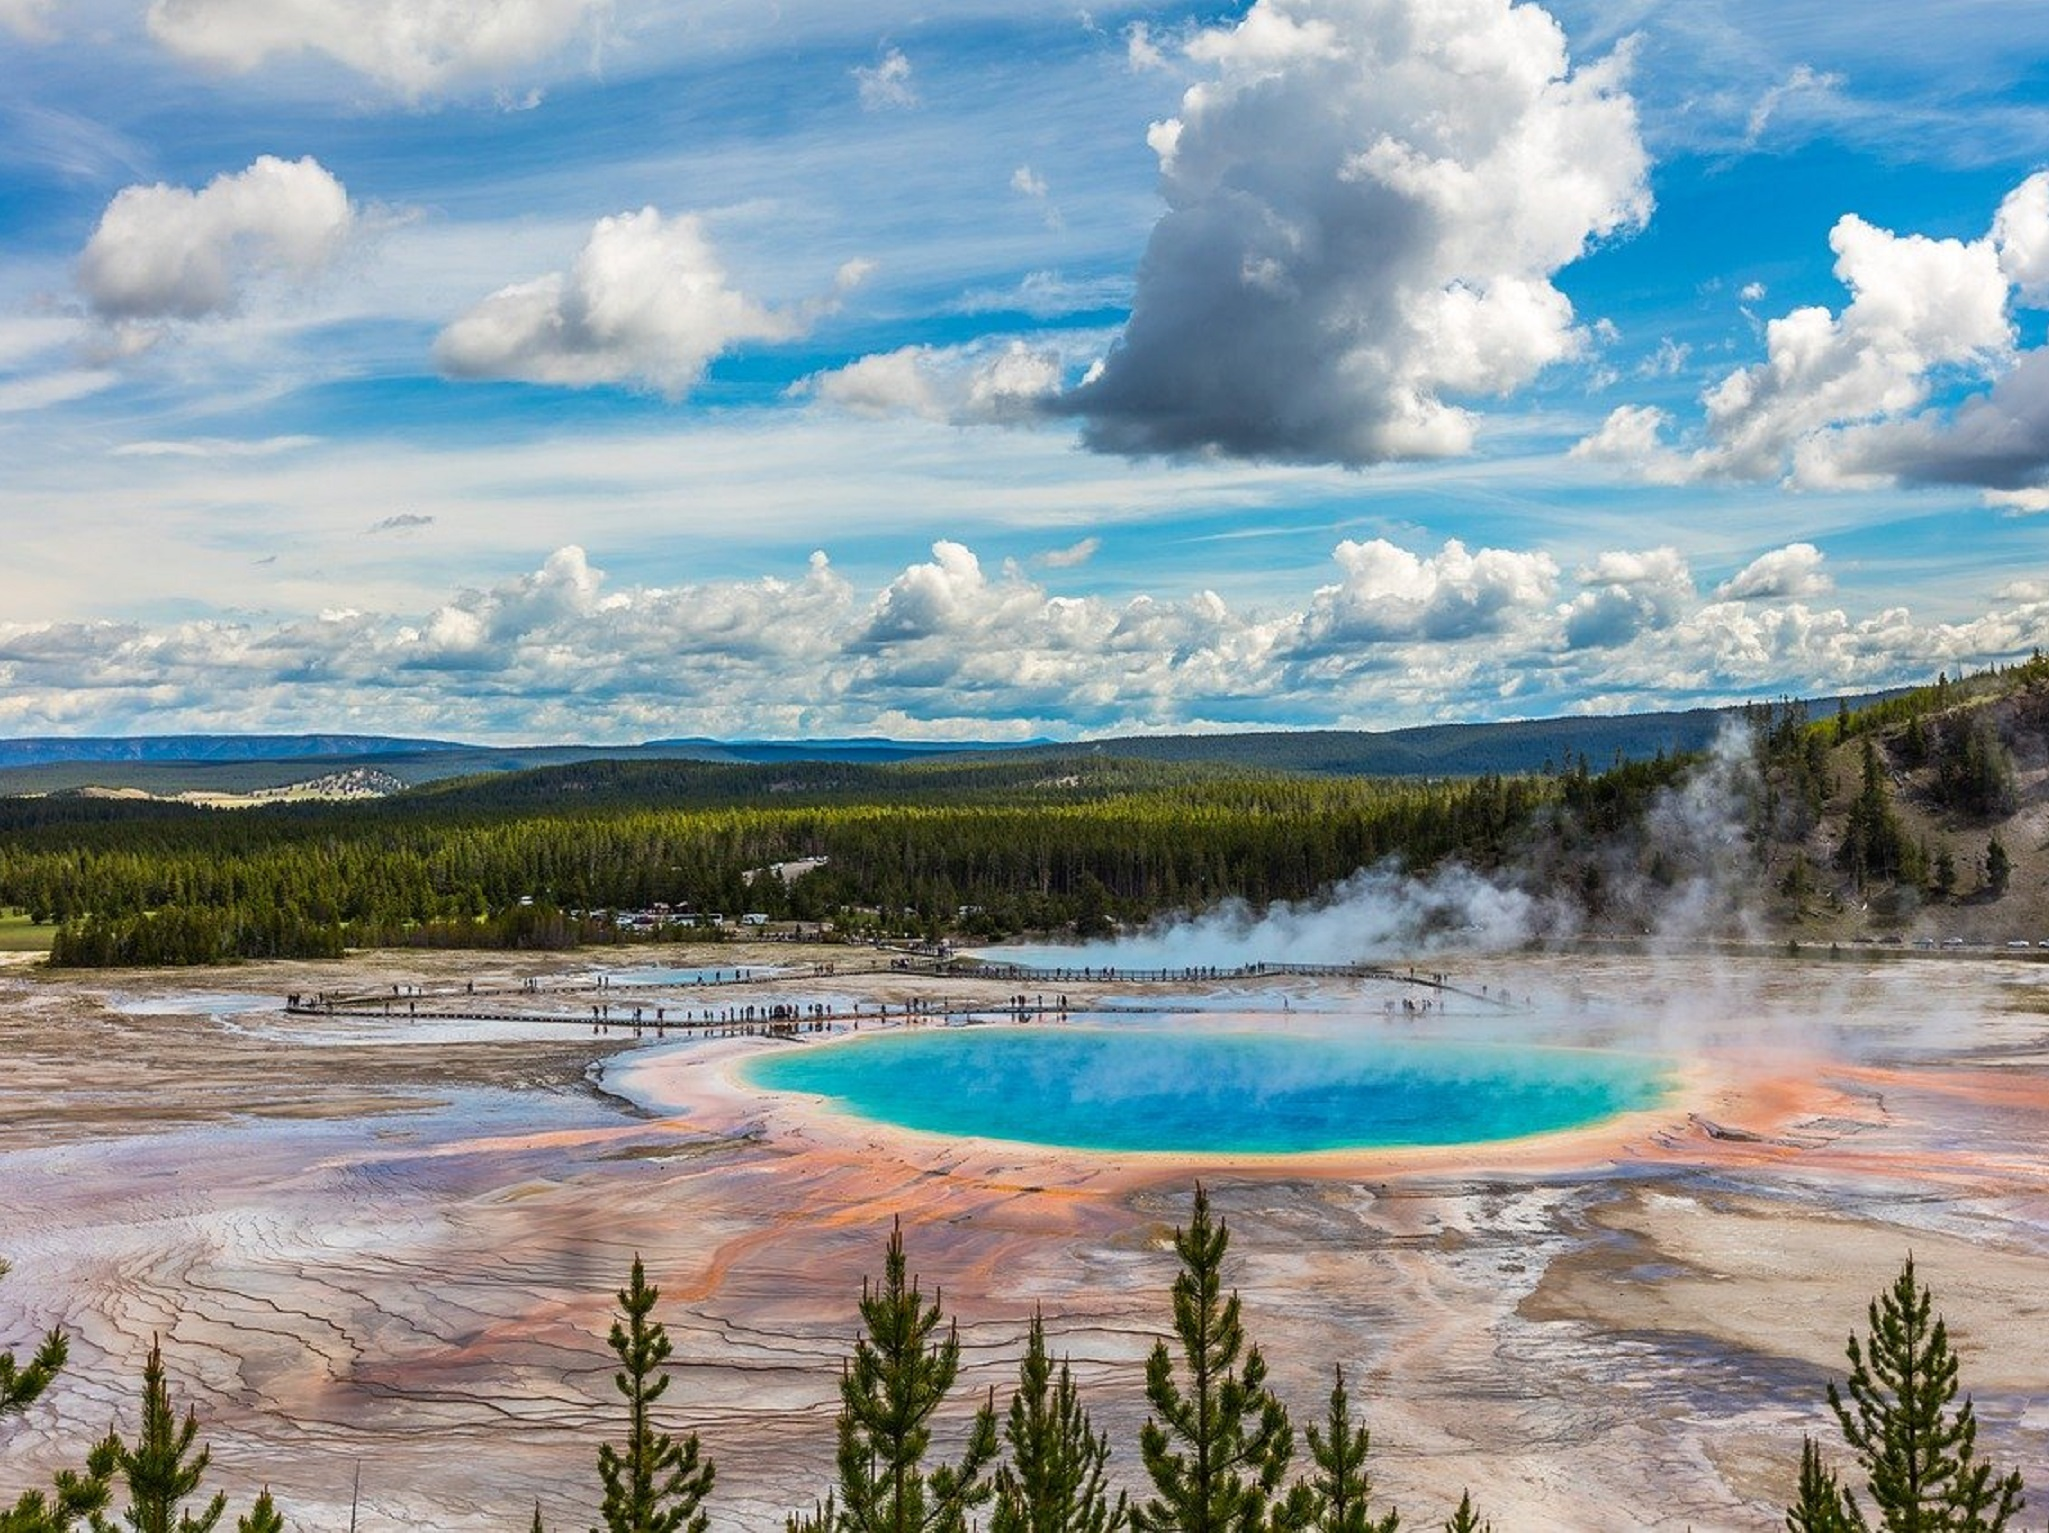 A bright blue hot spring at Yellowstone